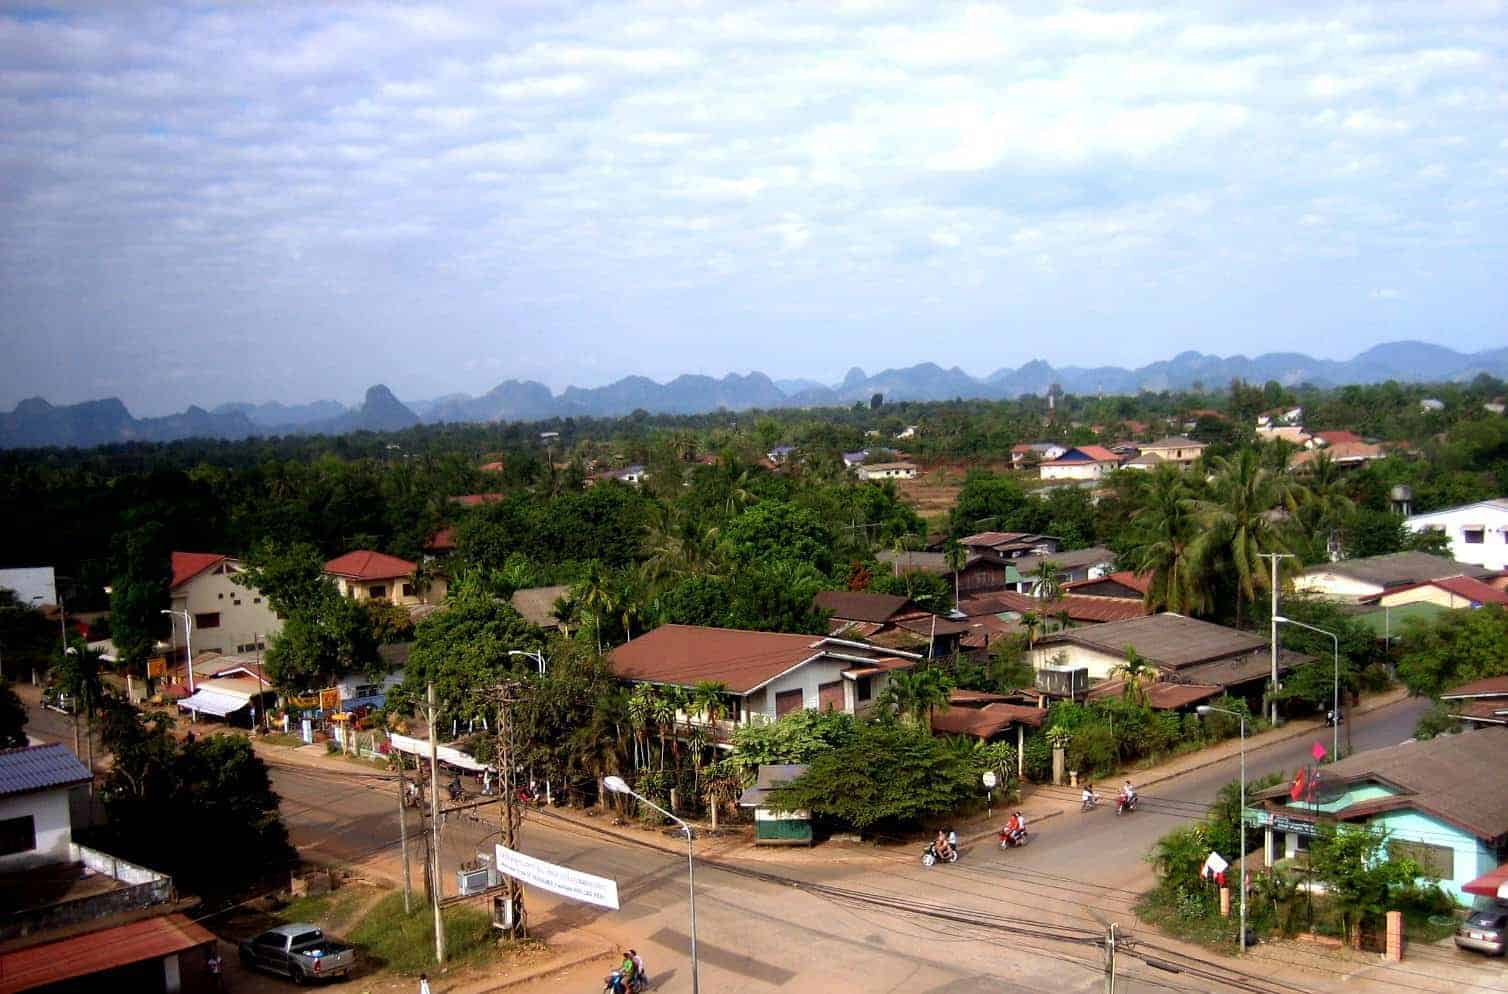 View of Thakhek Town, Laos and surrounding mountains.